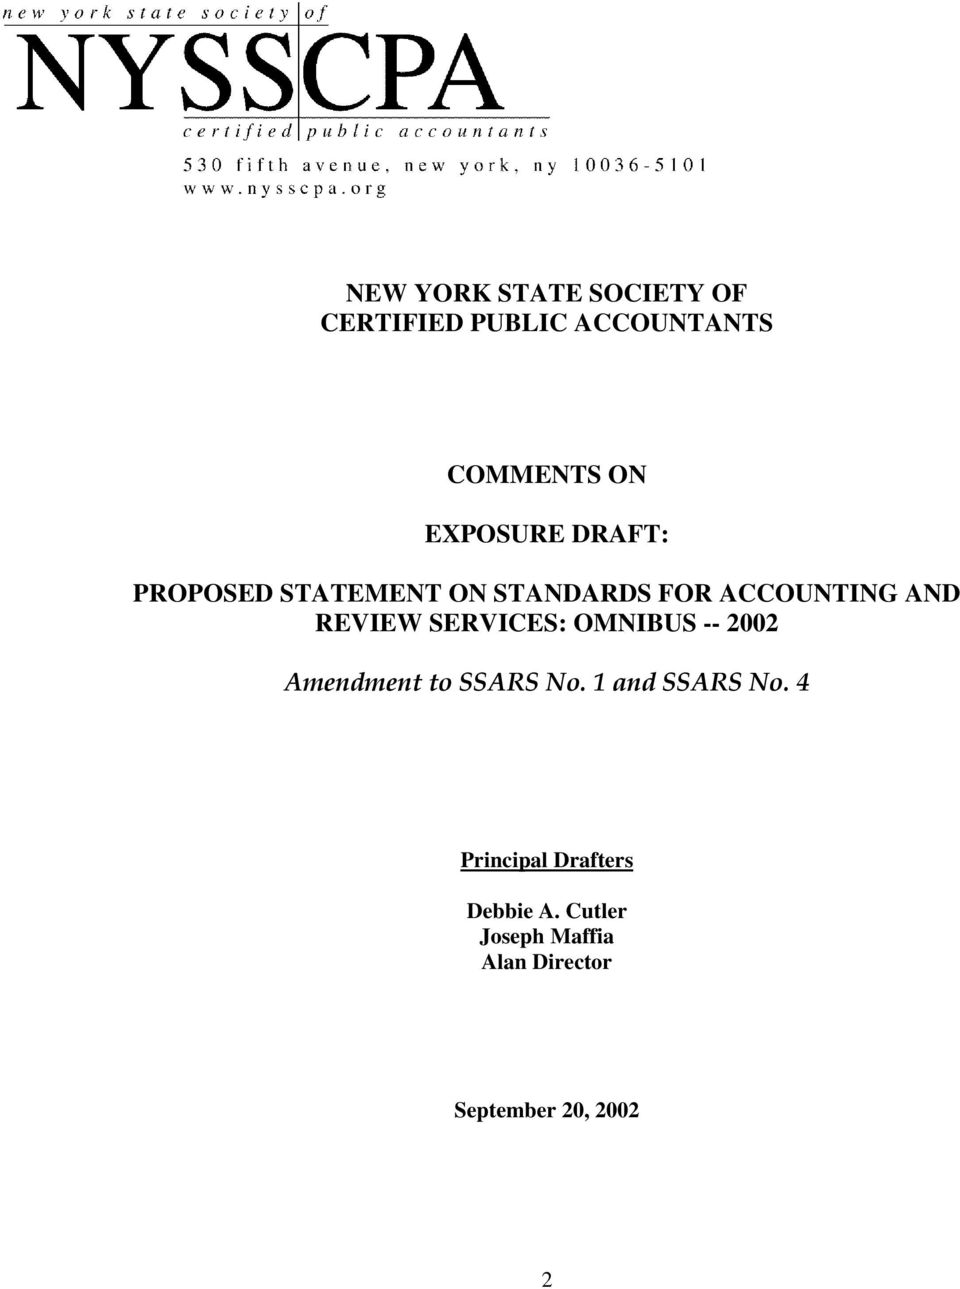 Proposed Statement on Standards for Accounting and Review Services: Omnibus